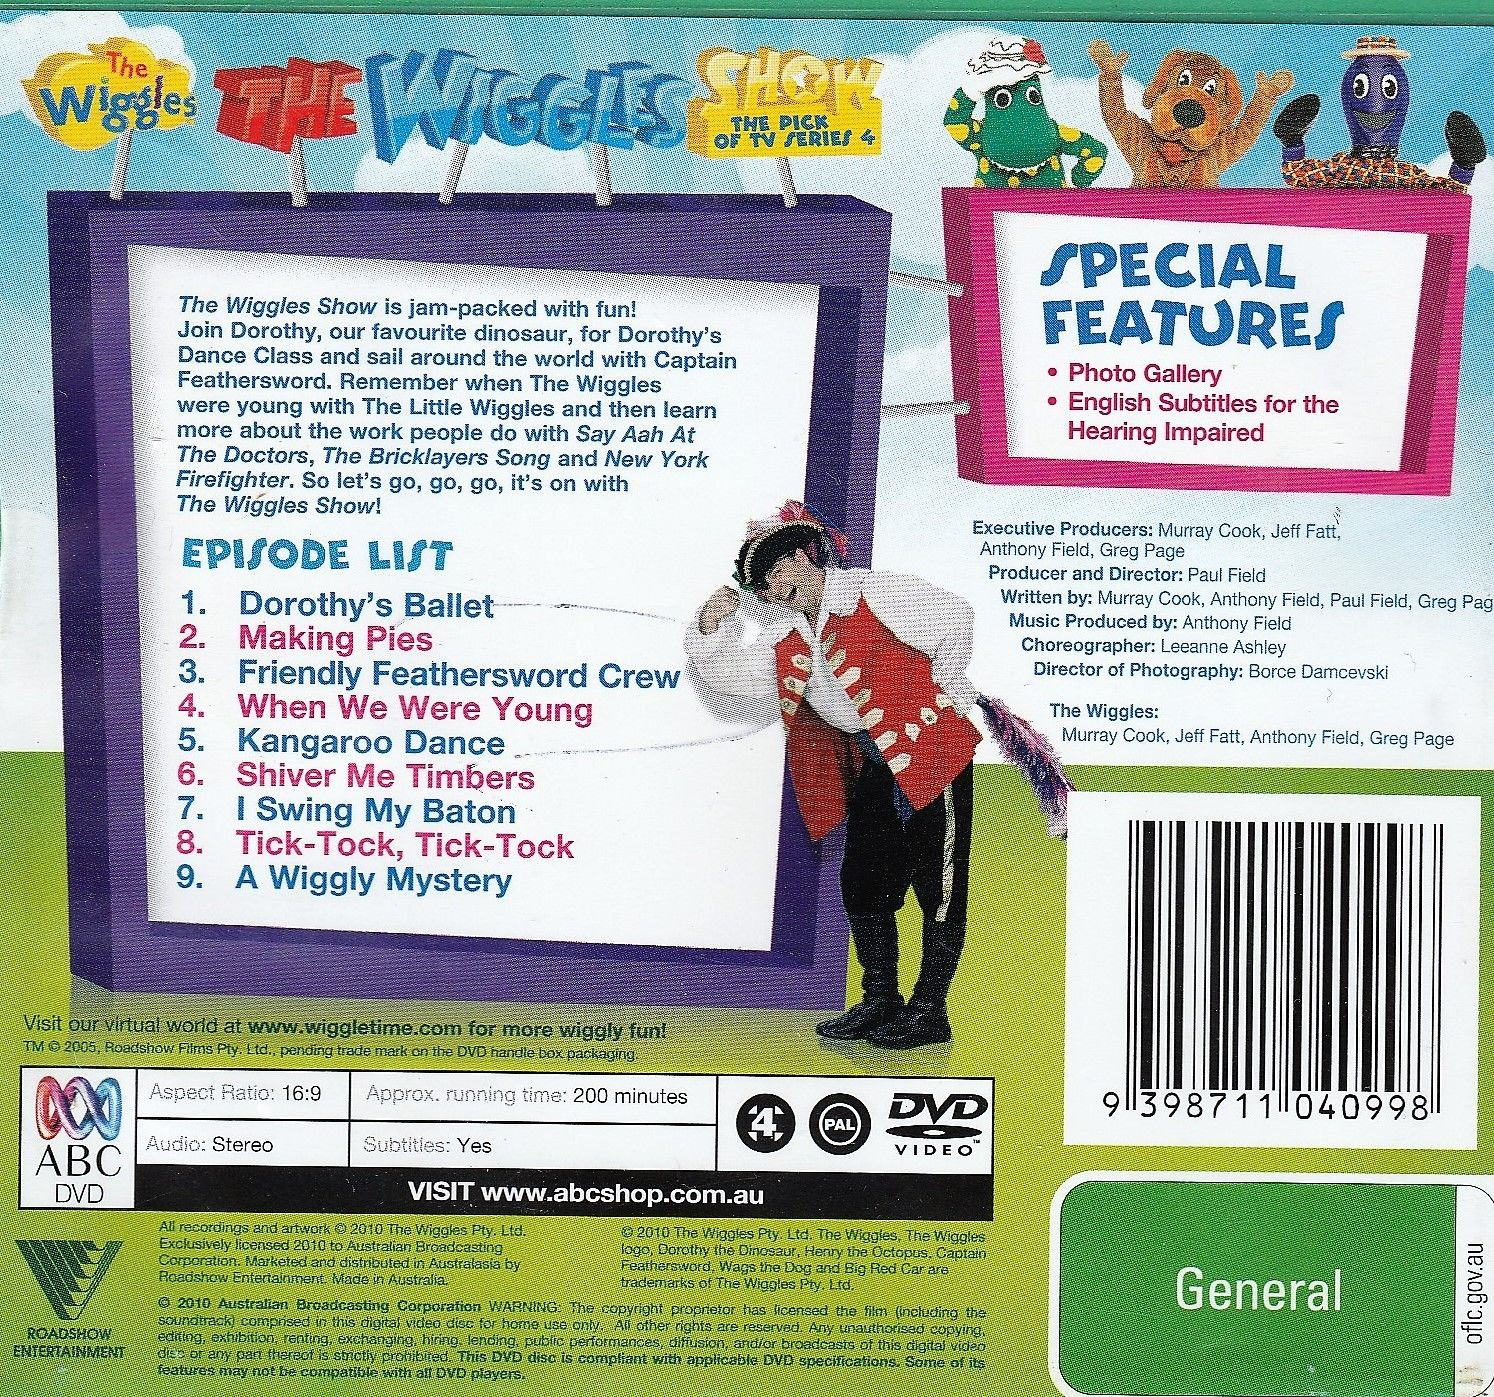 The Wiggles Show - The Pick Of TV Series 4